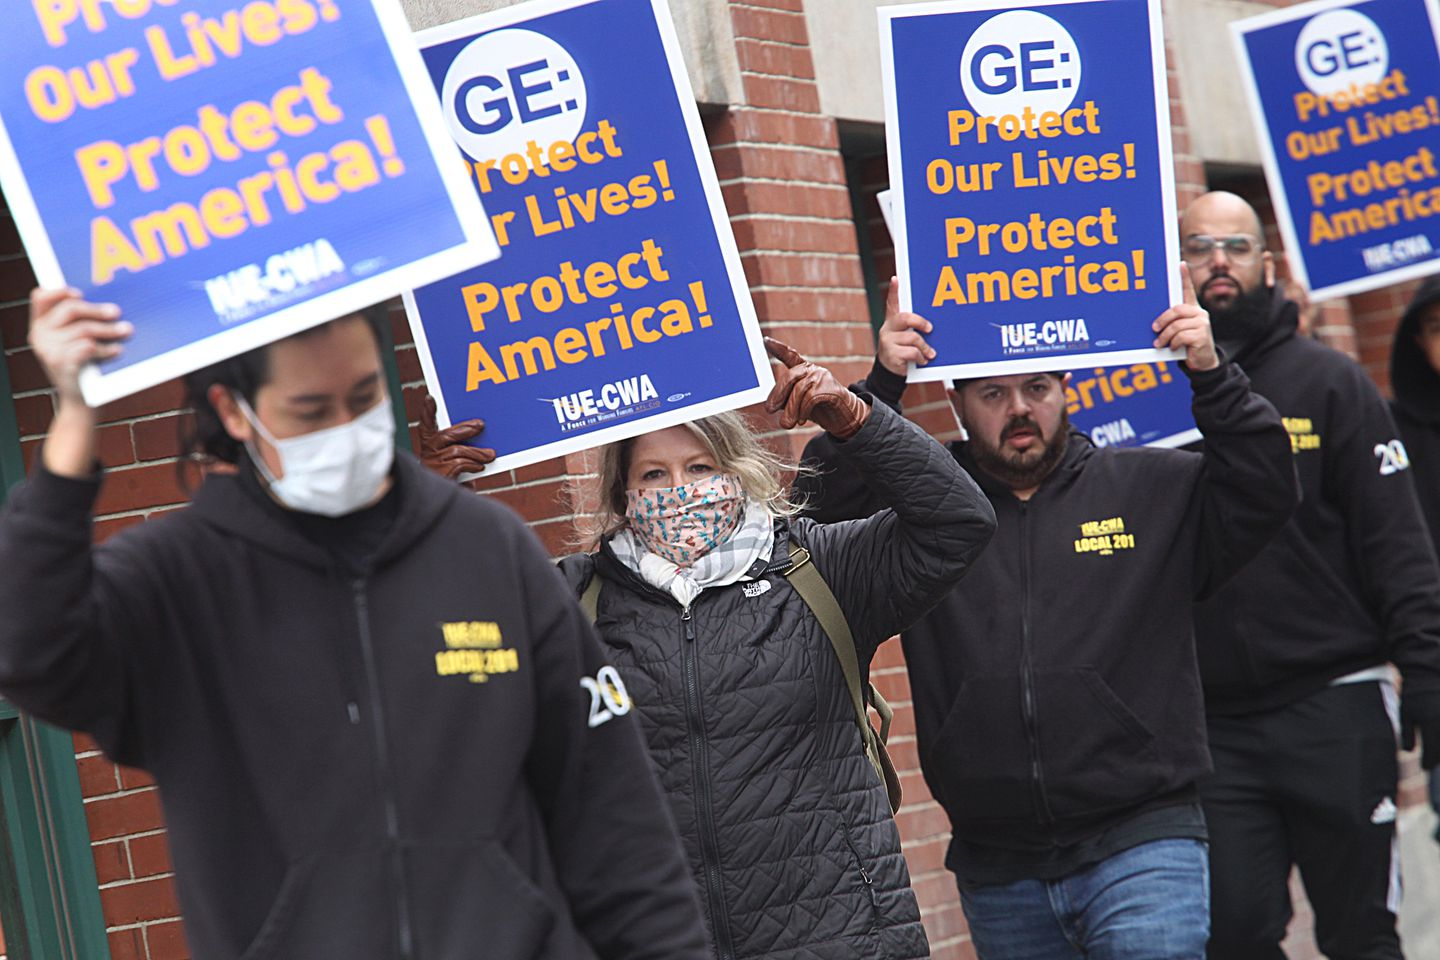 General Electric workers held a protest on Necco Street out of concern for their safety due to coronavirus.